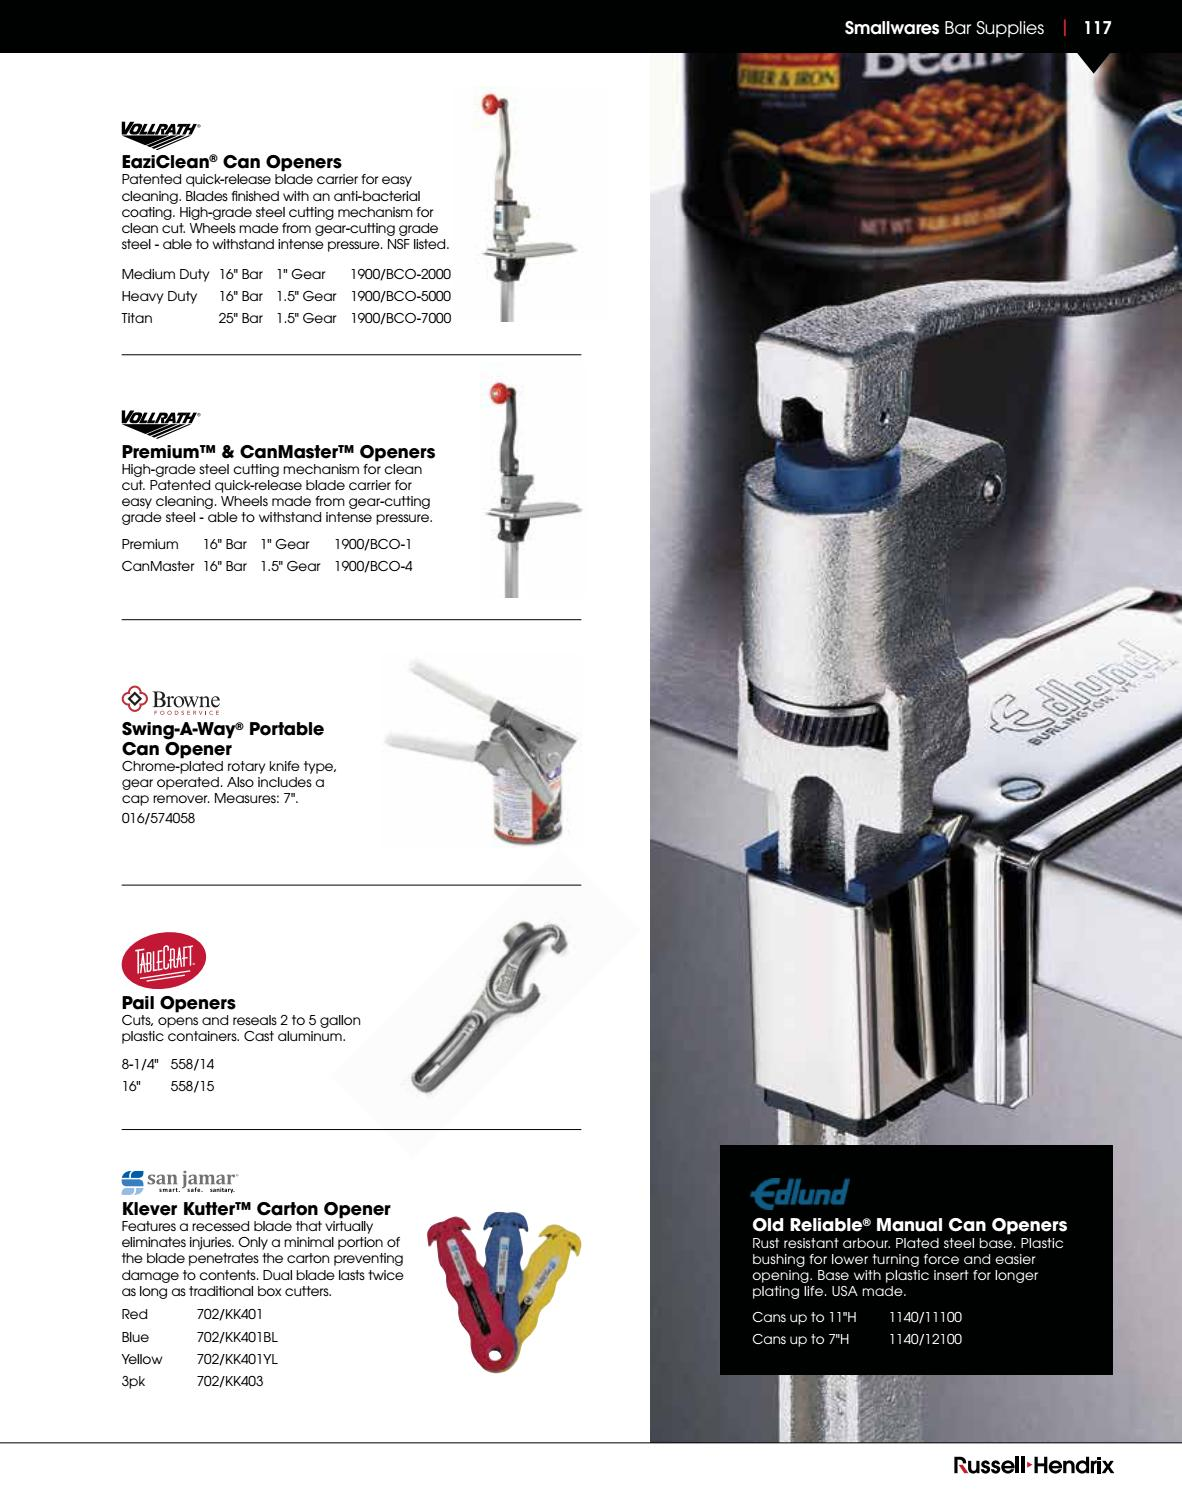 Russell Hendrix Smallwares Catalogue by Russell Hendrix Foodservice